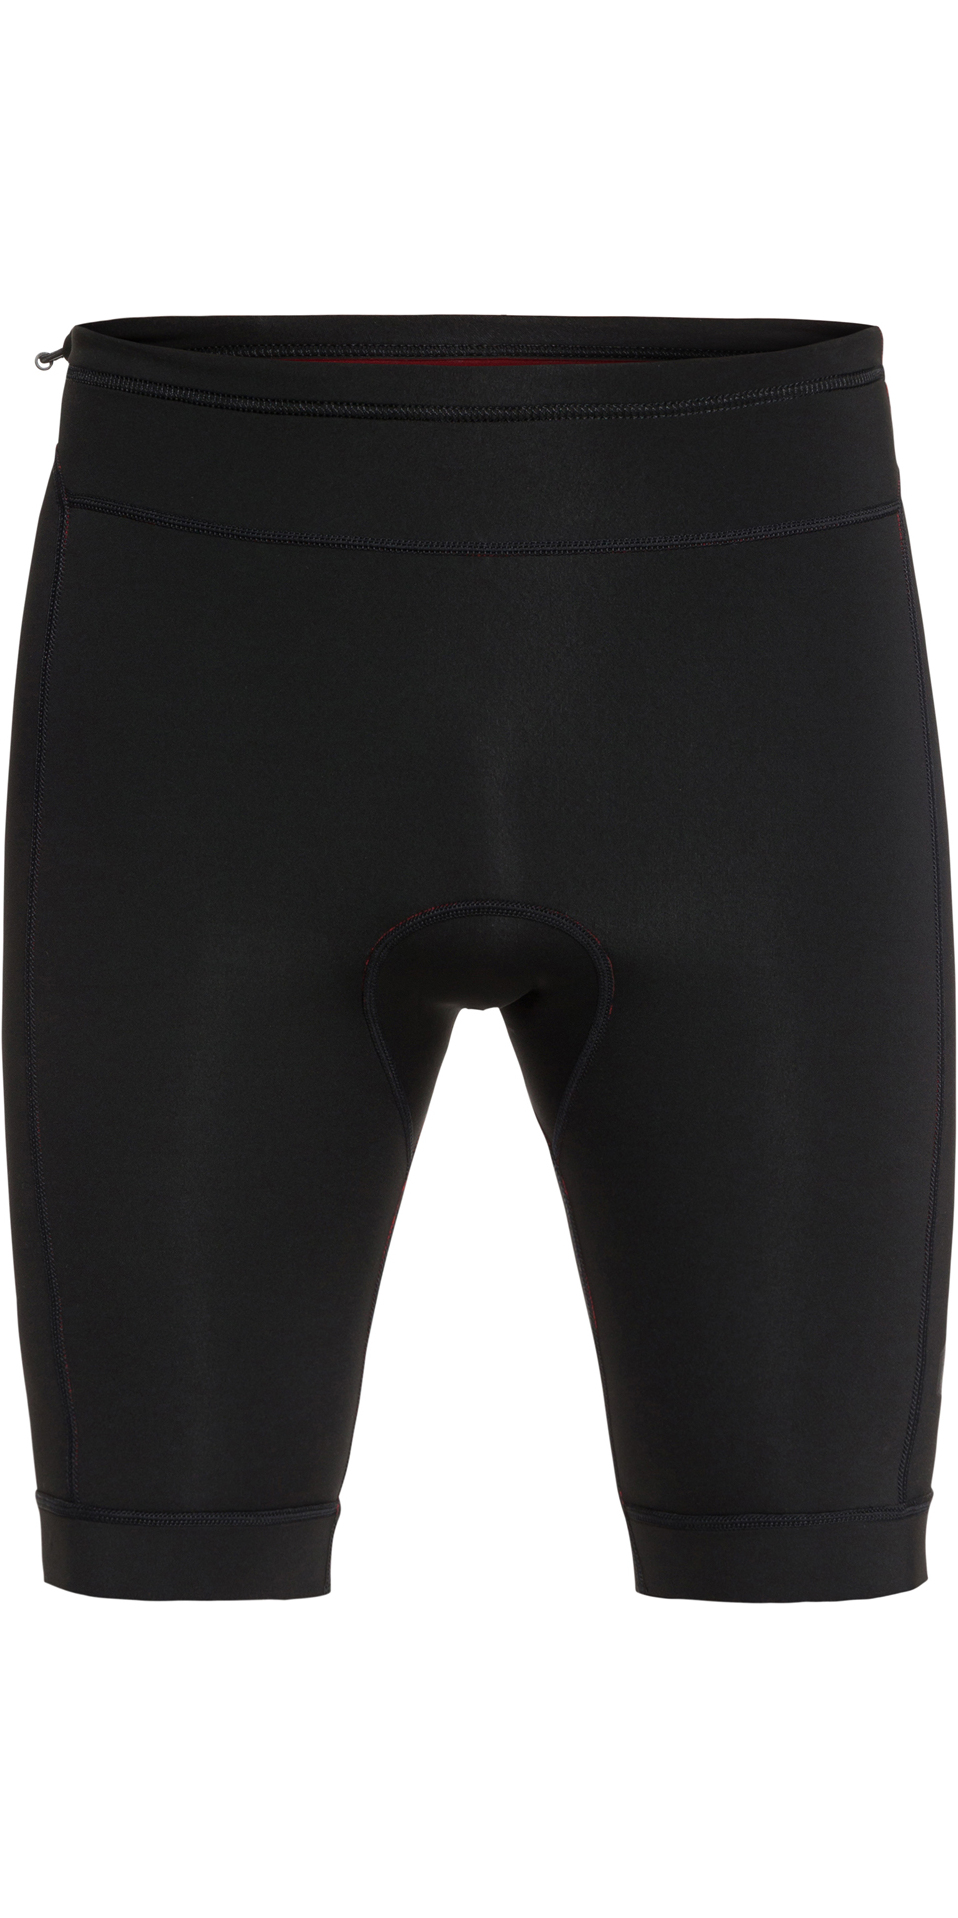 2019 Quiksilver 1mm Neoprene Shorts Black EQYWH03007